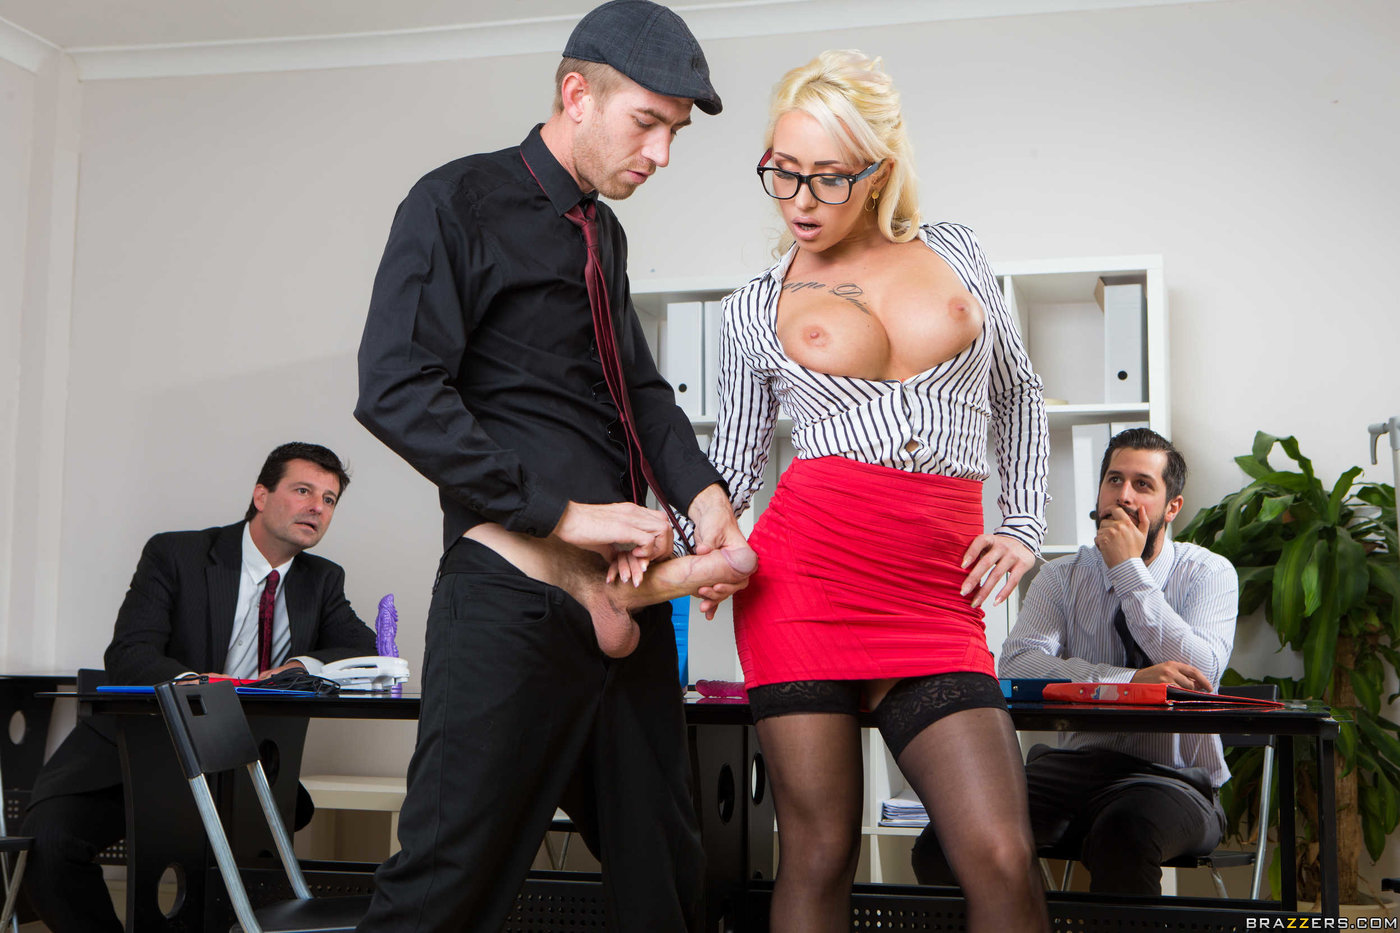 Glasses-wearing MILF boss gets horny during a boring meeting